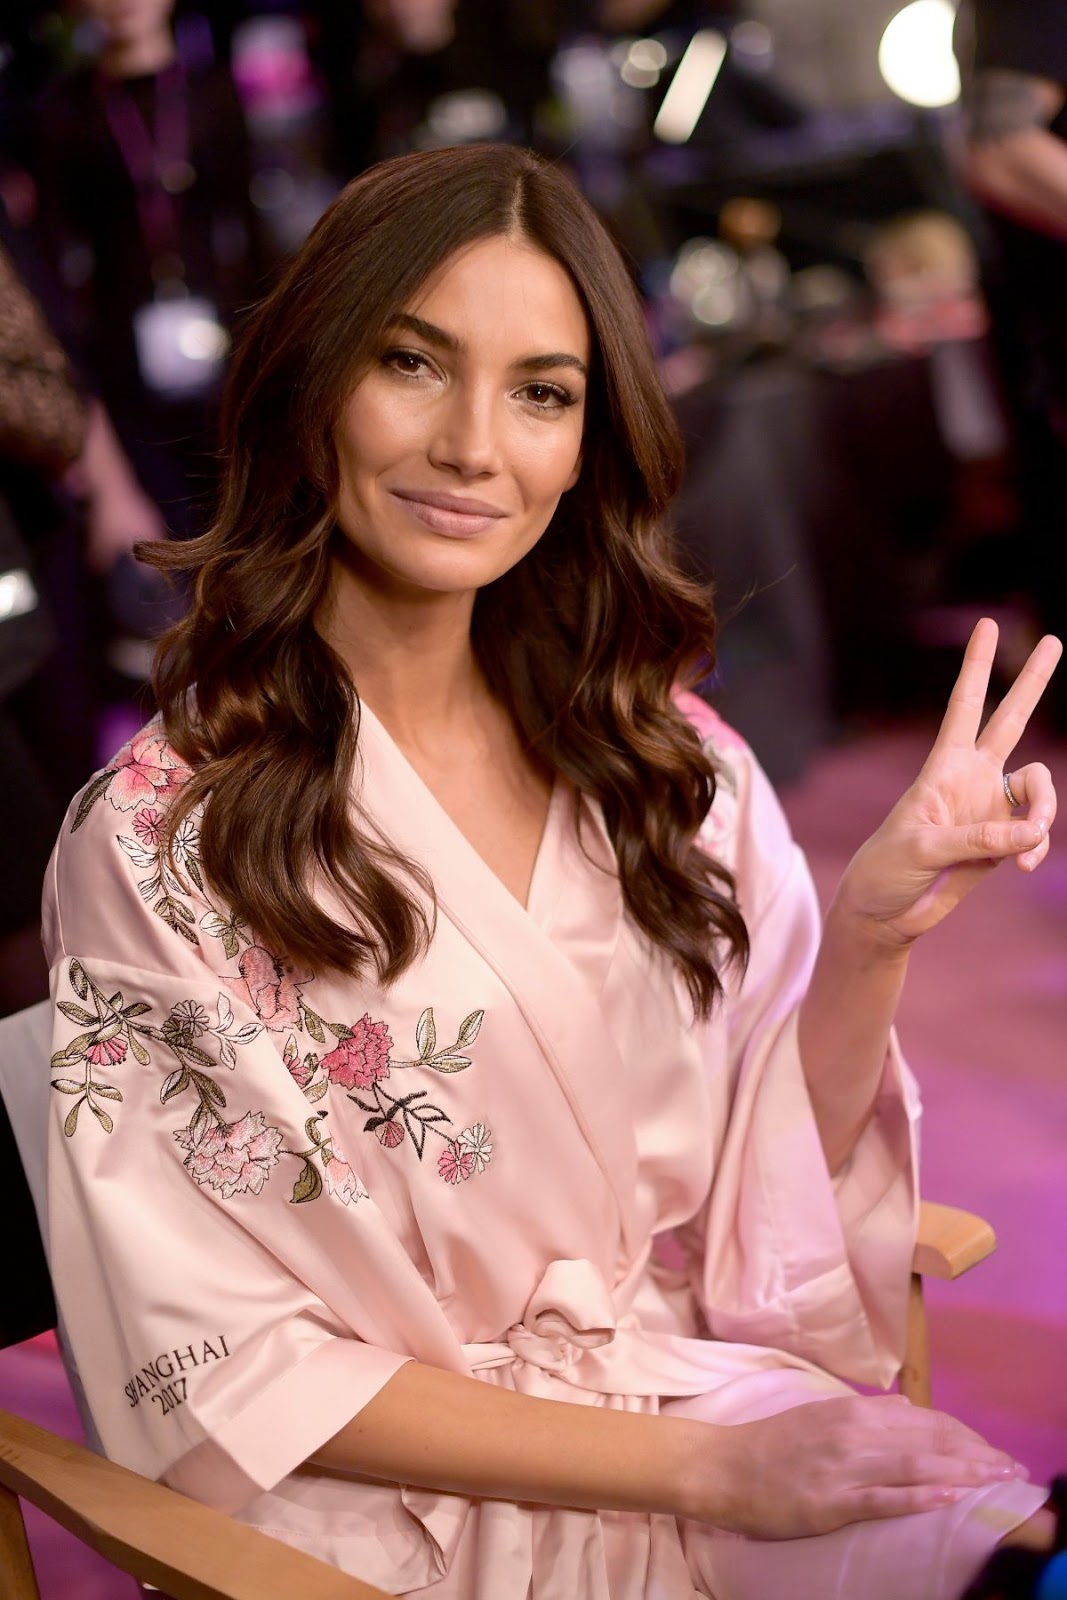 Lily Aldridge on the Backstage at 2017 Victoria's Secret Fashion Show in Shanghai